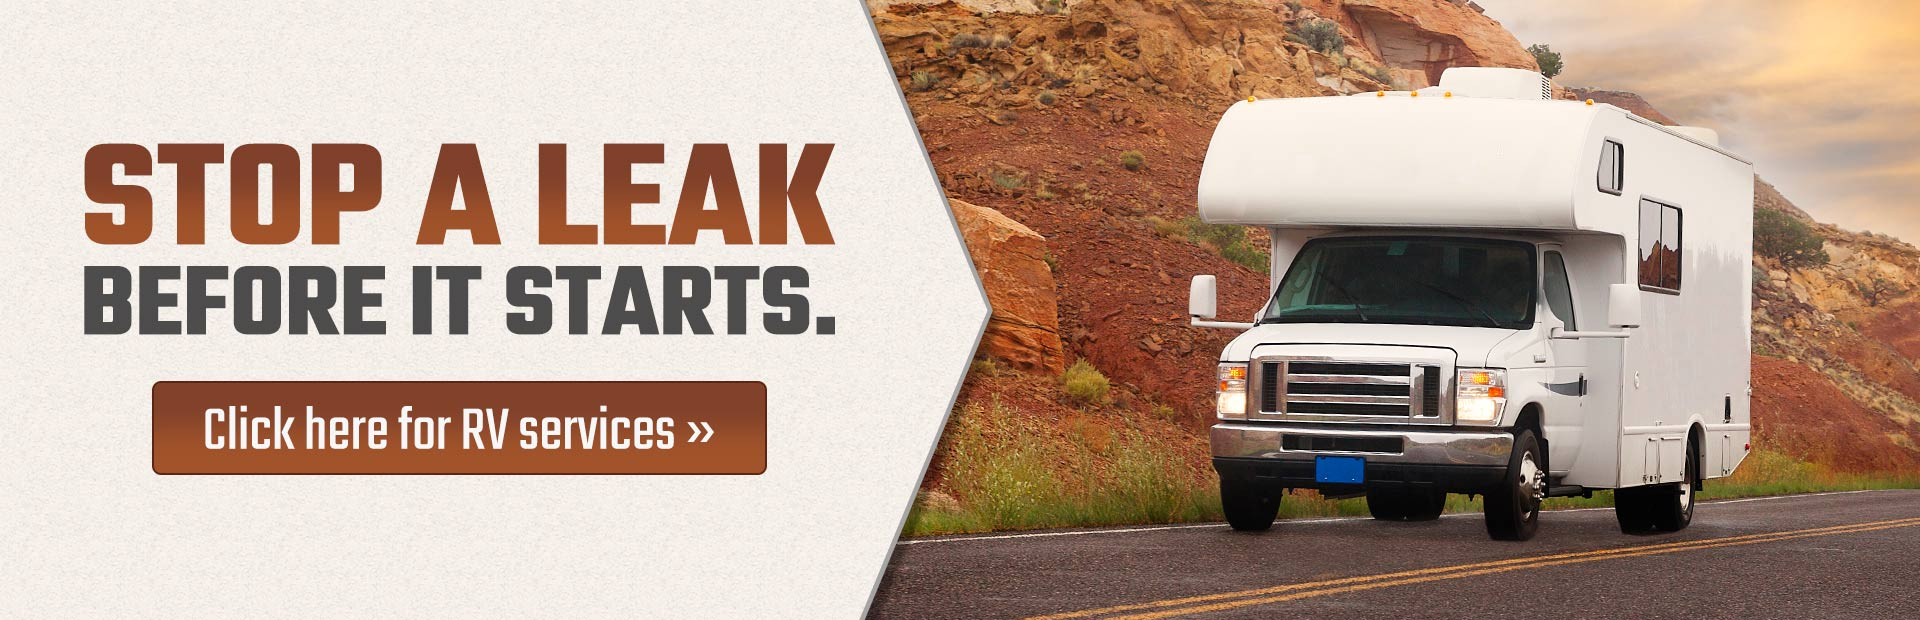 Stop a leak before it starts. Click here for RV services.